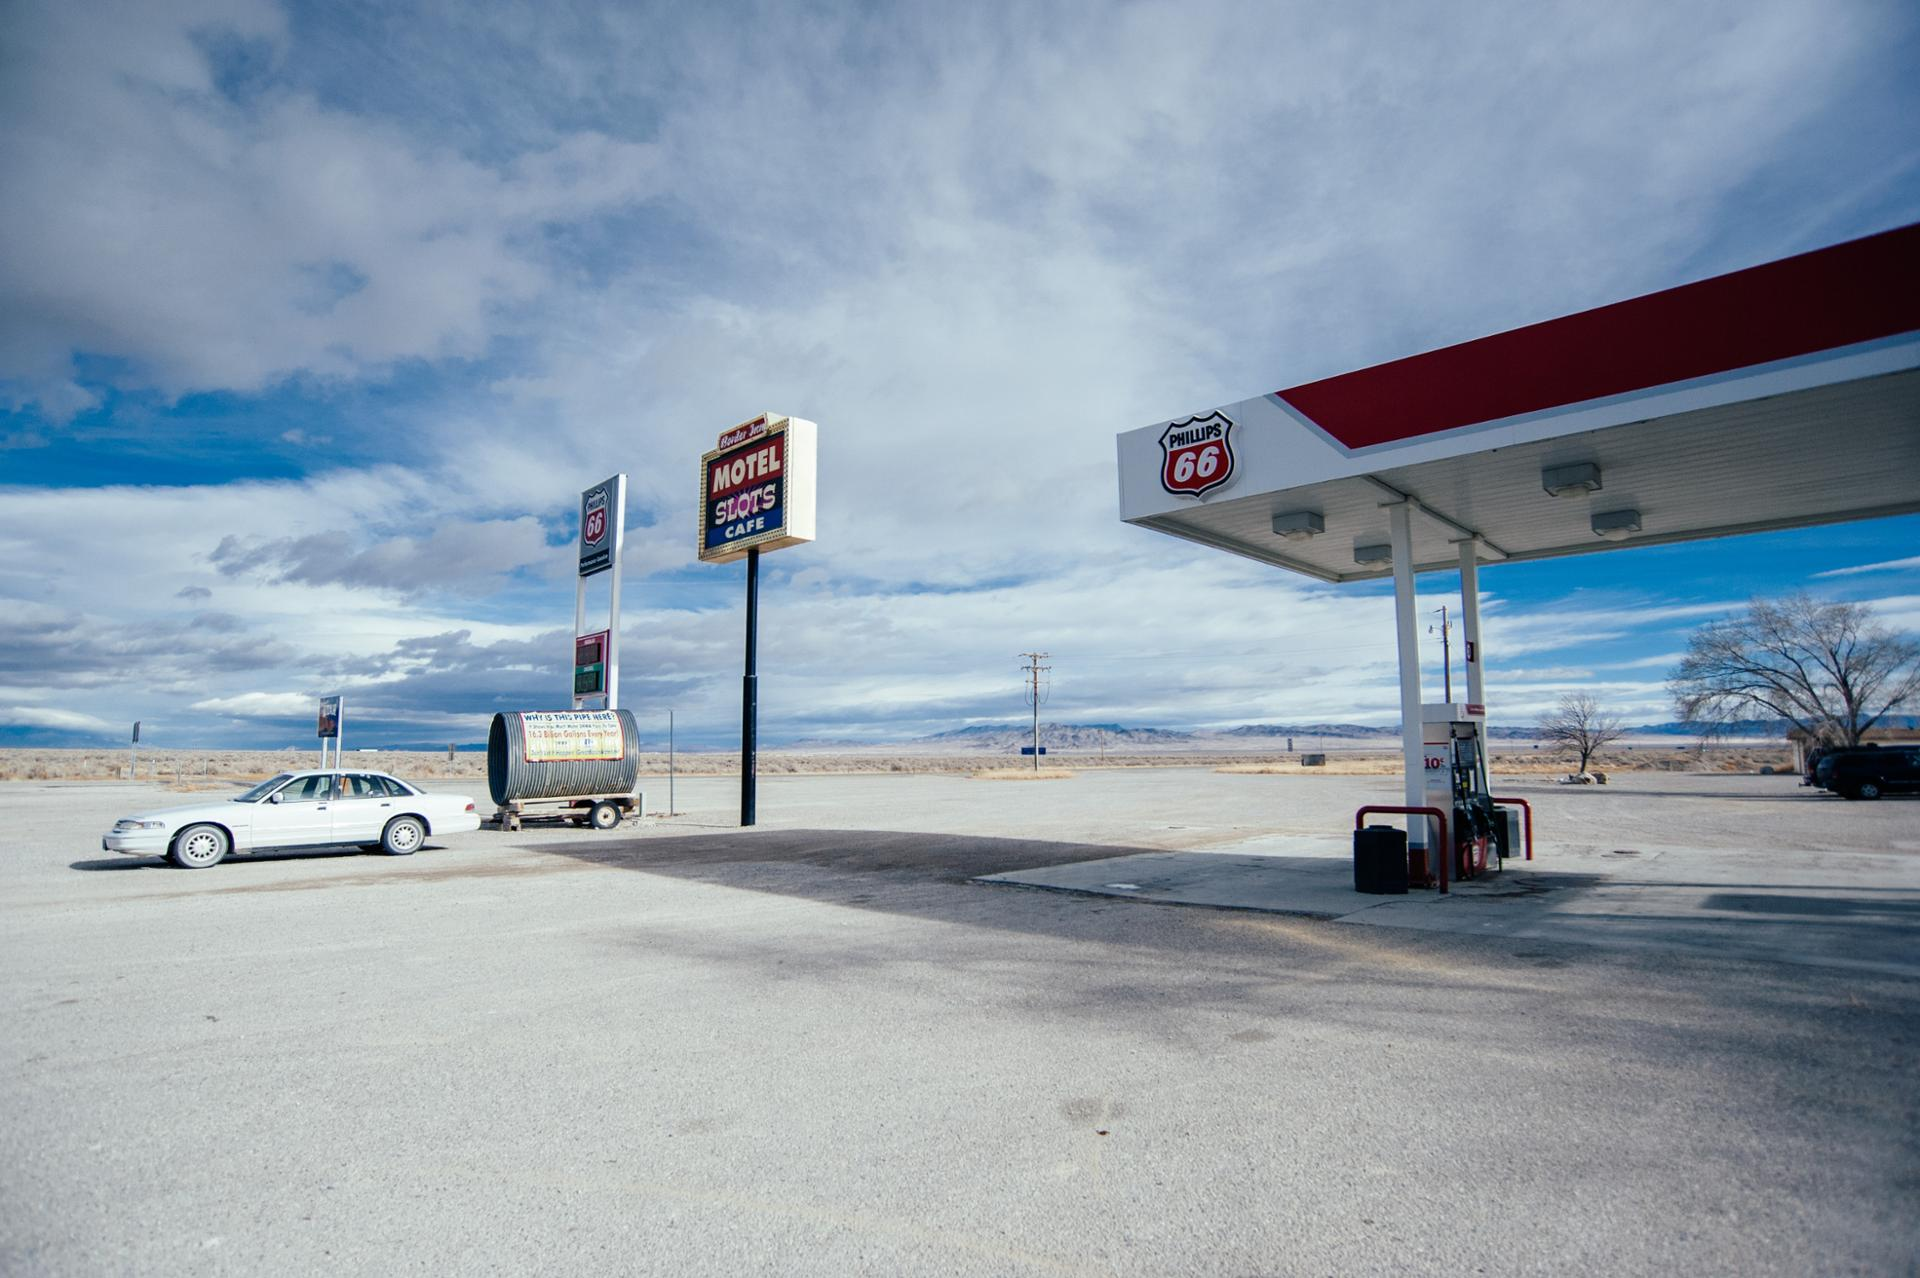 Gas Station at the border of Nevada